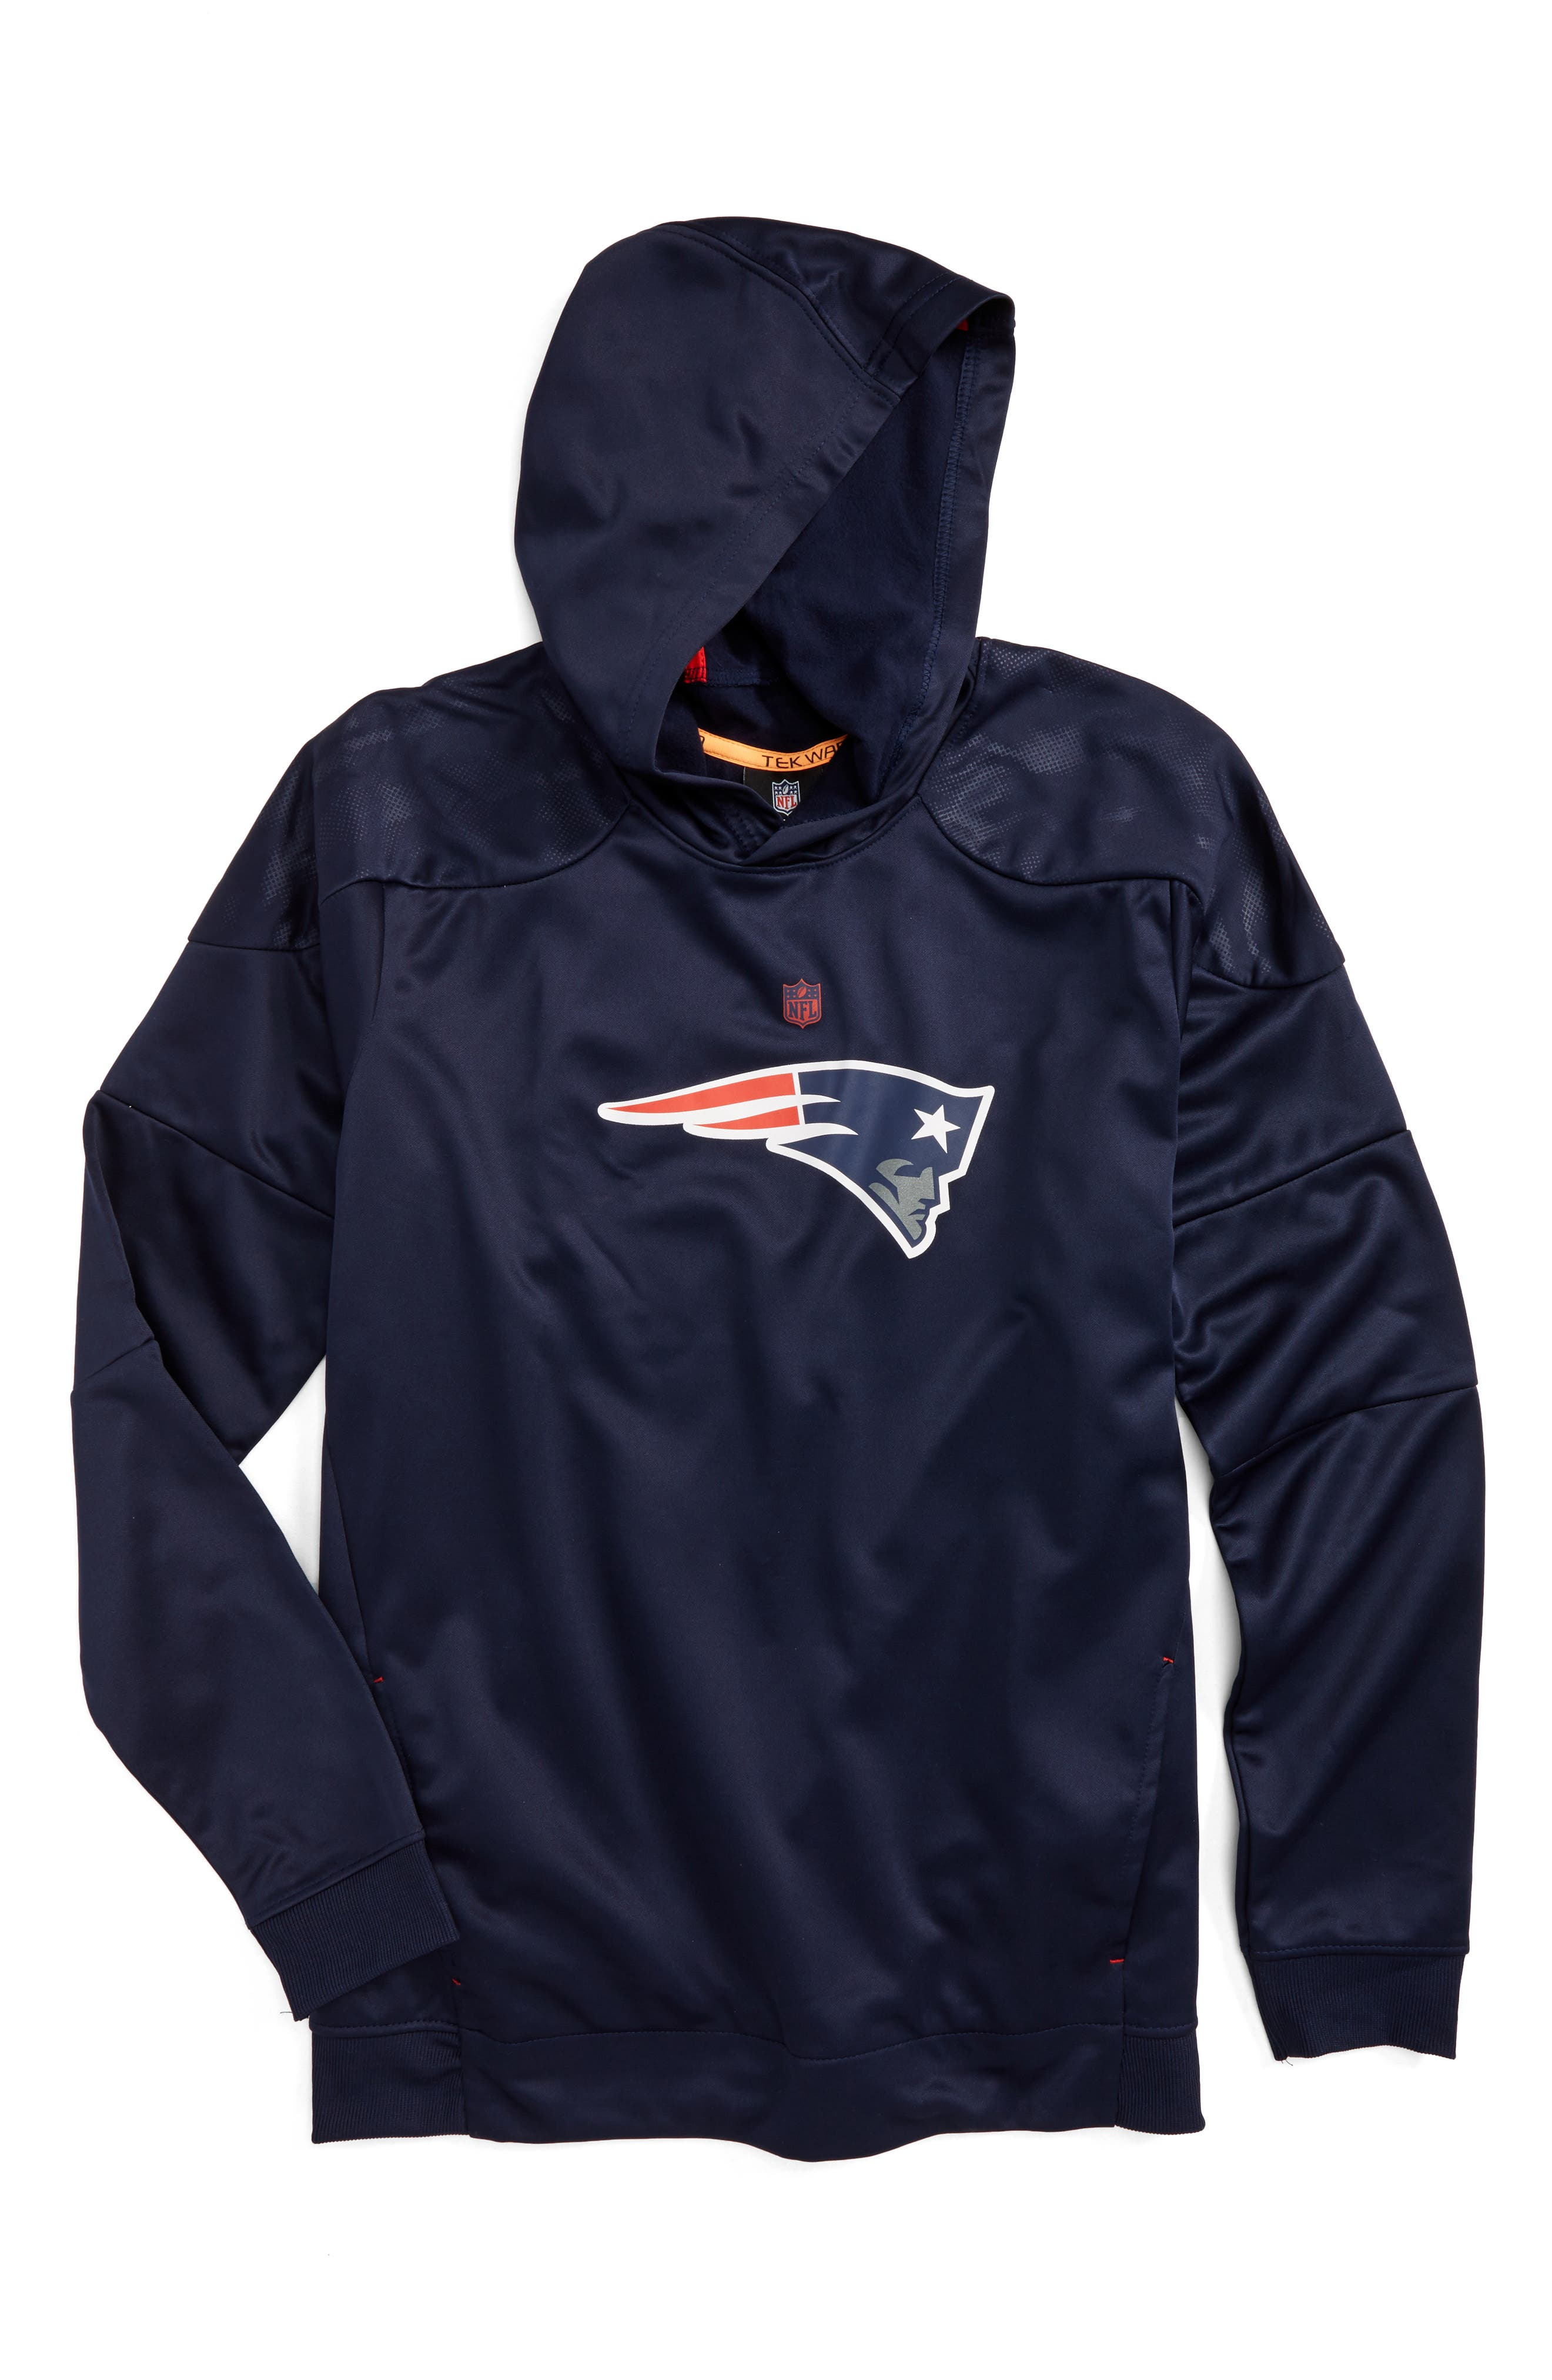 Main Image - Outerstuff NFL New England Patriots Hoodie (Big Boys)